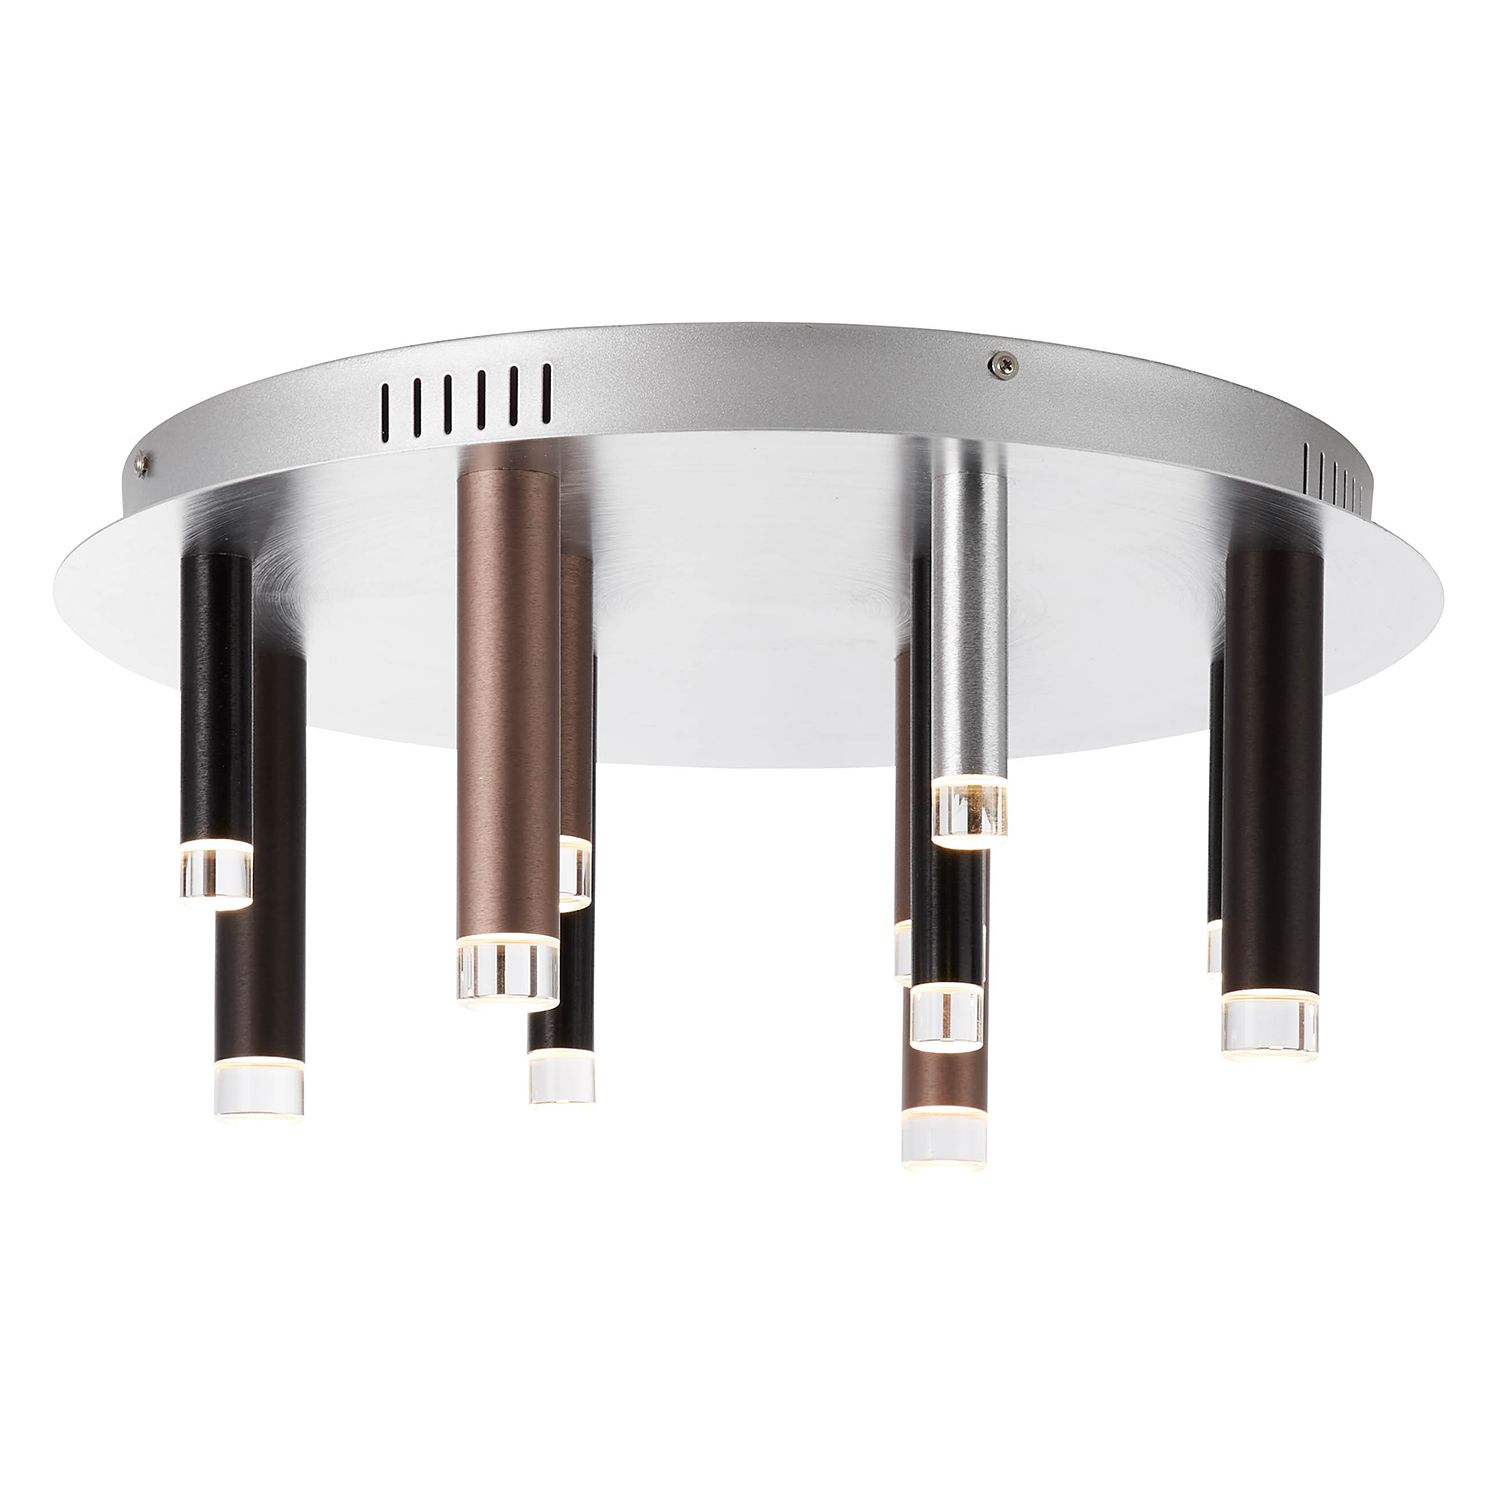 home24 LED-Deckenleuchte Cembalo III